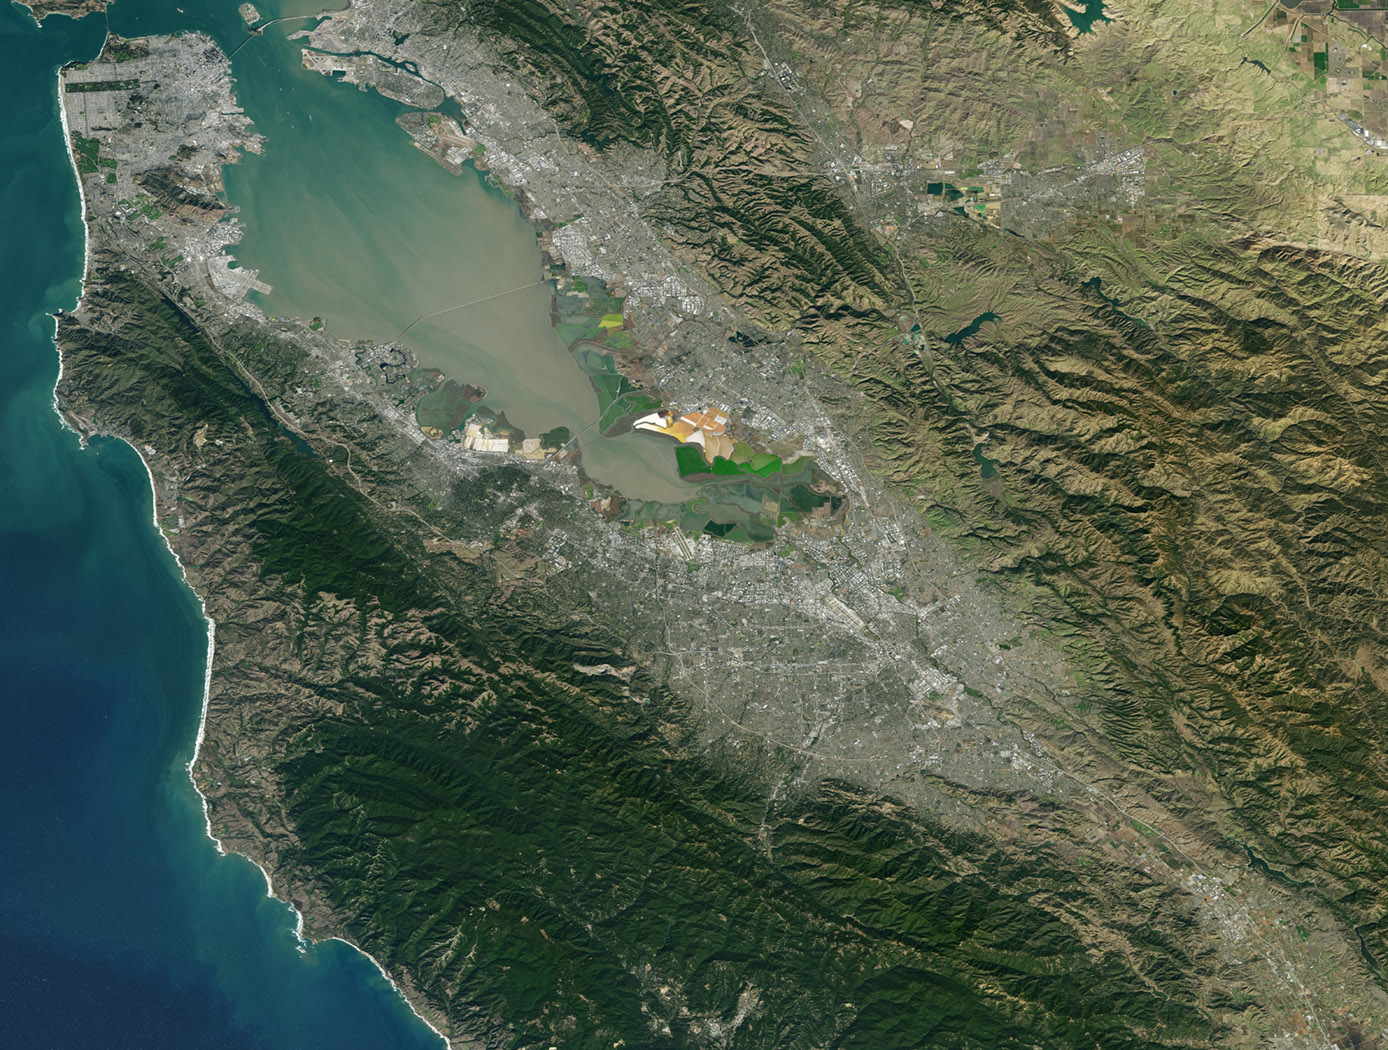 Landsat 7 image of the Santa Clara area acquired Nov 16, 2015. Landsat 7 is a U.S. satellite used to acquire remotely sensed images of the Earth's land surface and surrounding coastal regions. It is maintained by the Landsat 7 Project Science Office at the NASA Goddard Space Flight Center in Greenbelt, MD...Landsat satellites have been acquiring images of the Earths land surface since 1972. Currently there are more than 2 million Landsat images in the National Satellite Land Remote Sensing Data Archive.